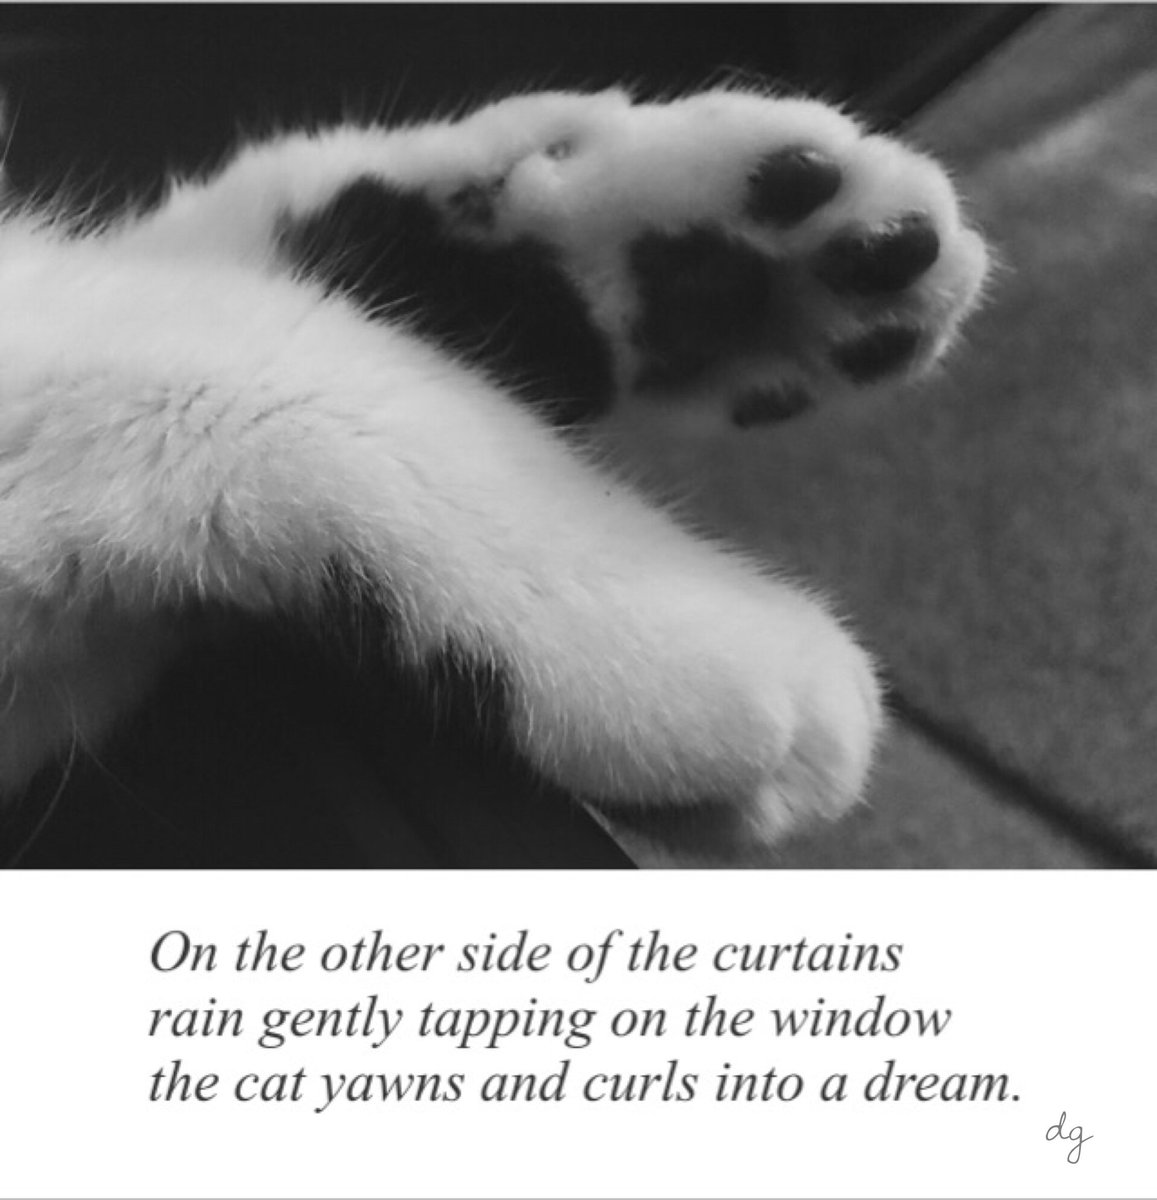 On the other side of the curtains rain gently tapping on the window the cat yawns and curls into a dream. https://t.co/OTcip6Rc4N